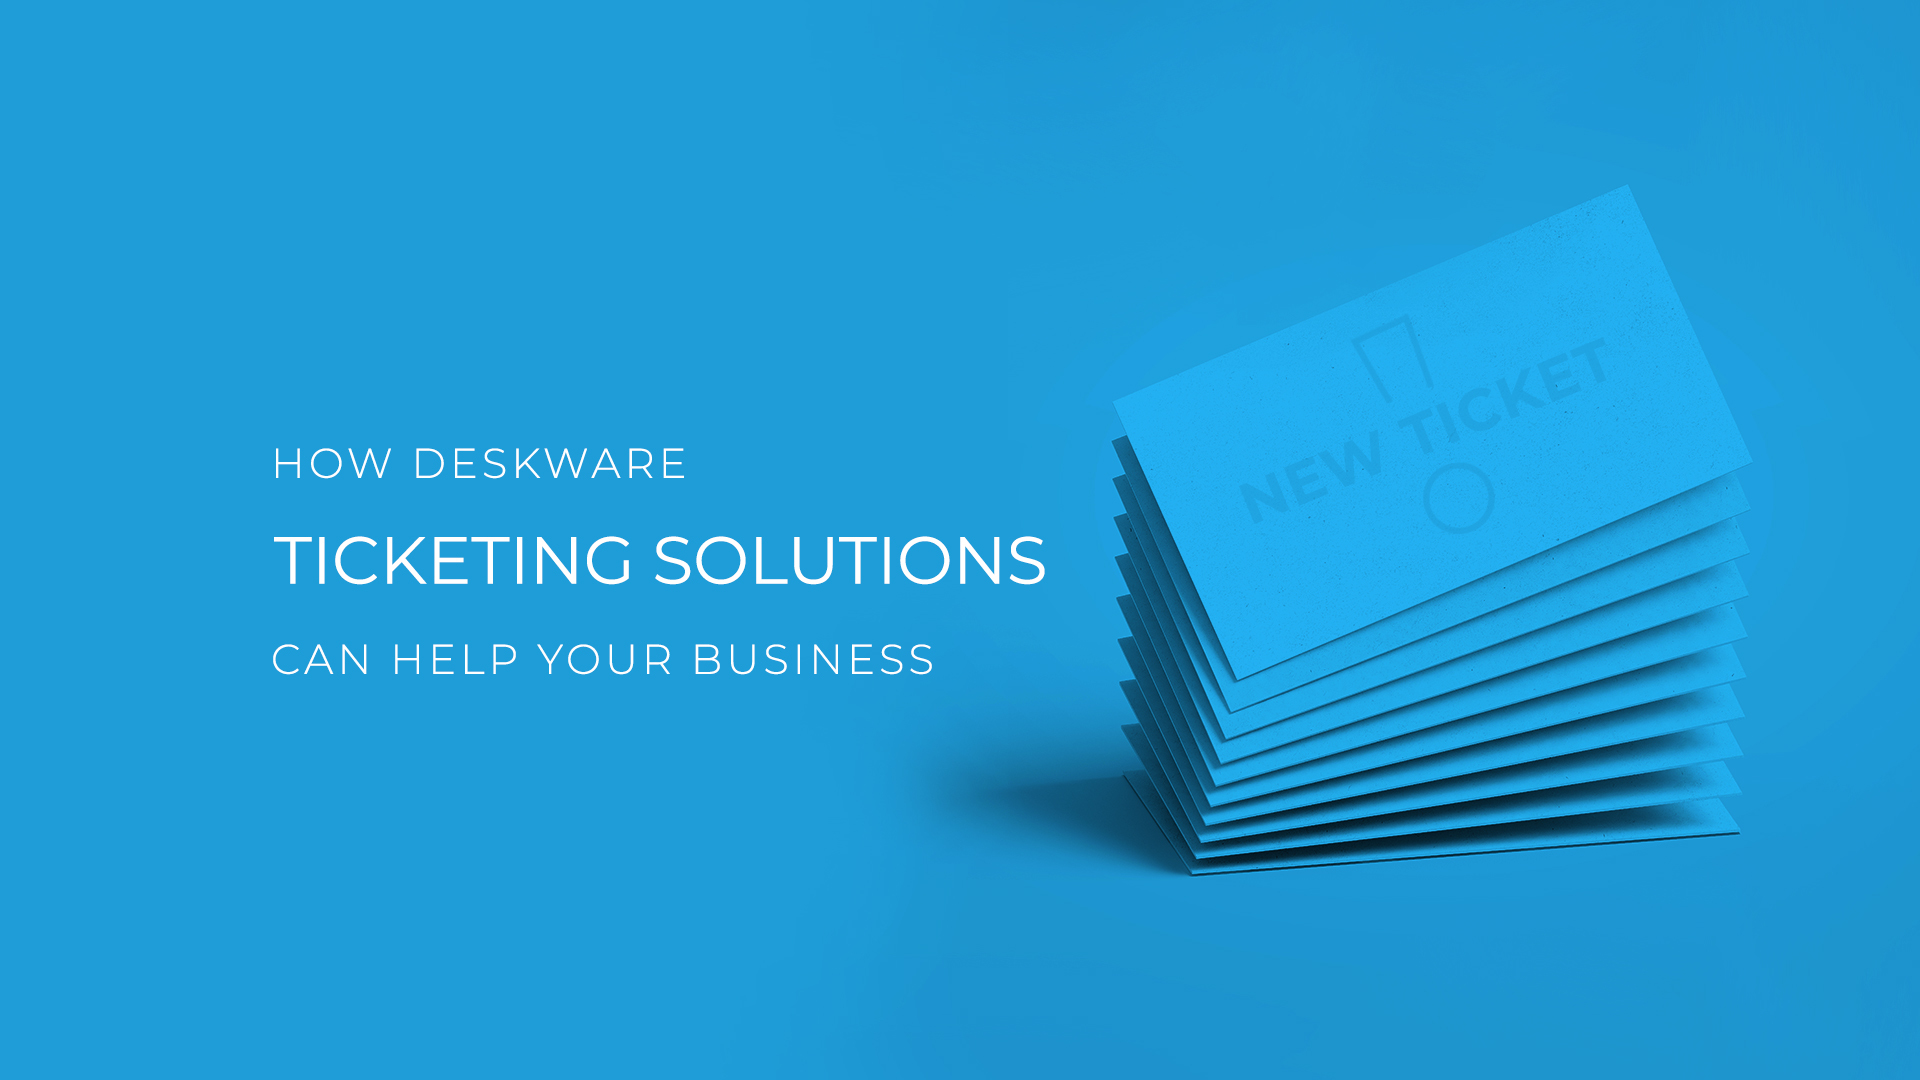 How Deskware Ticket Solutions Can Help Your Business